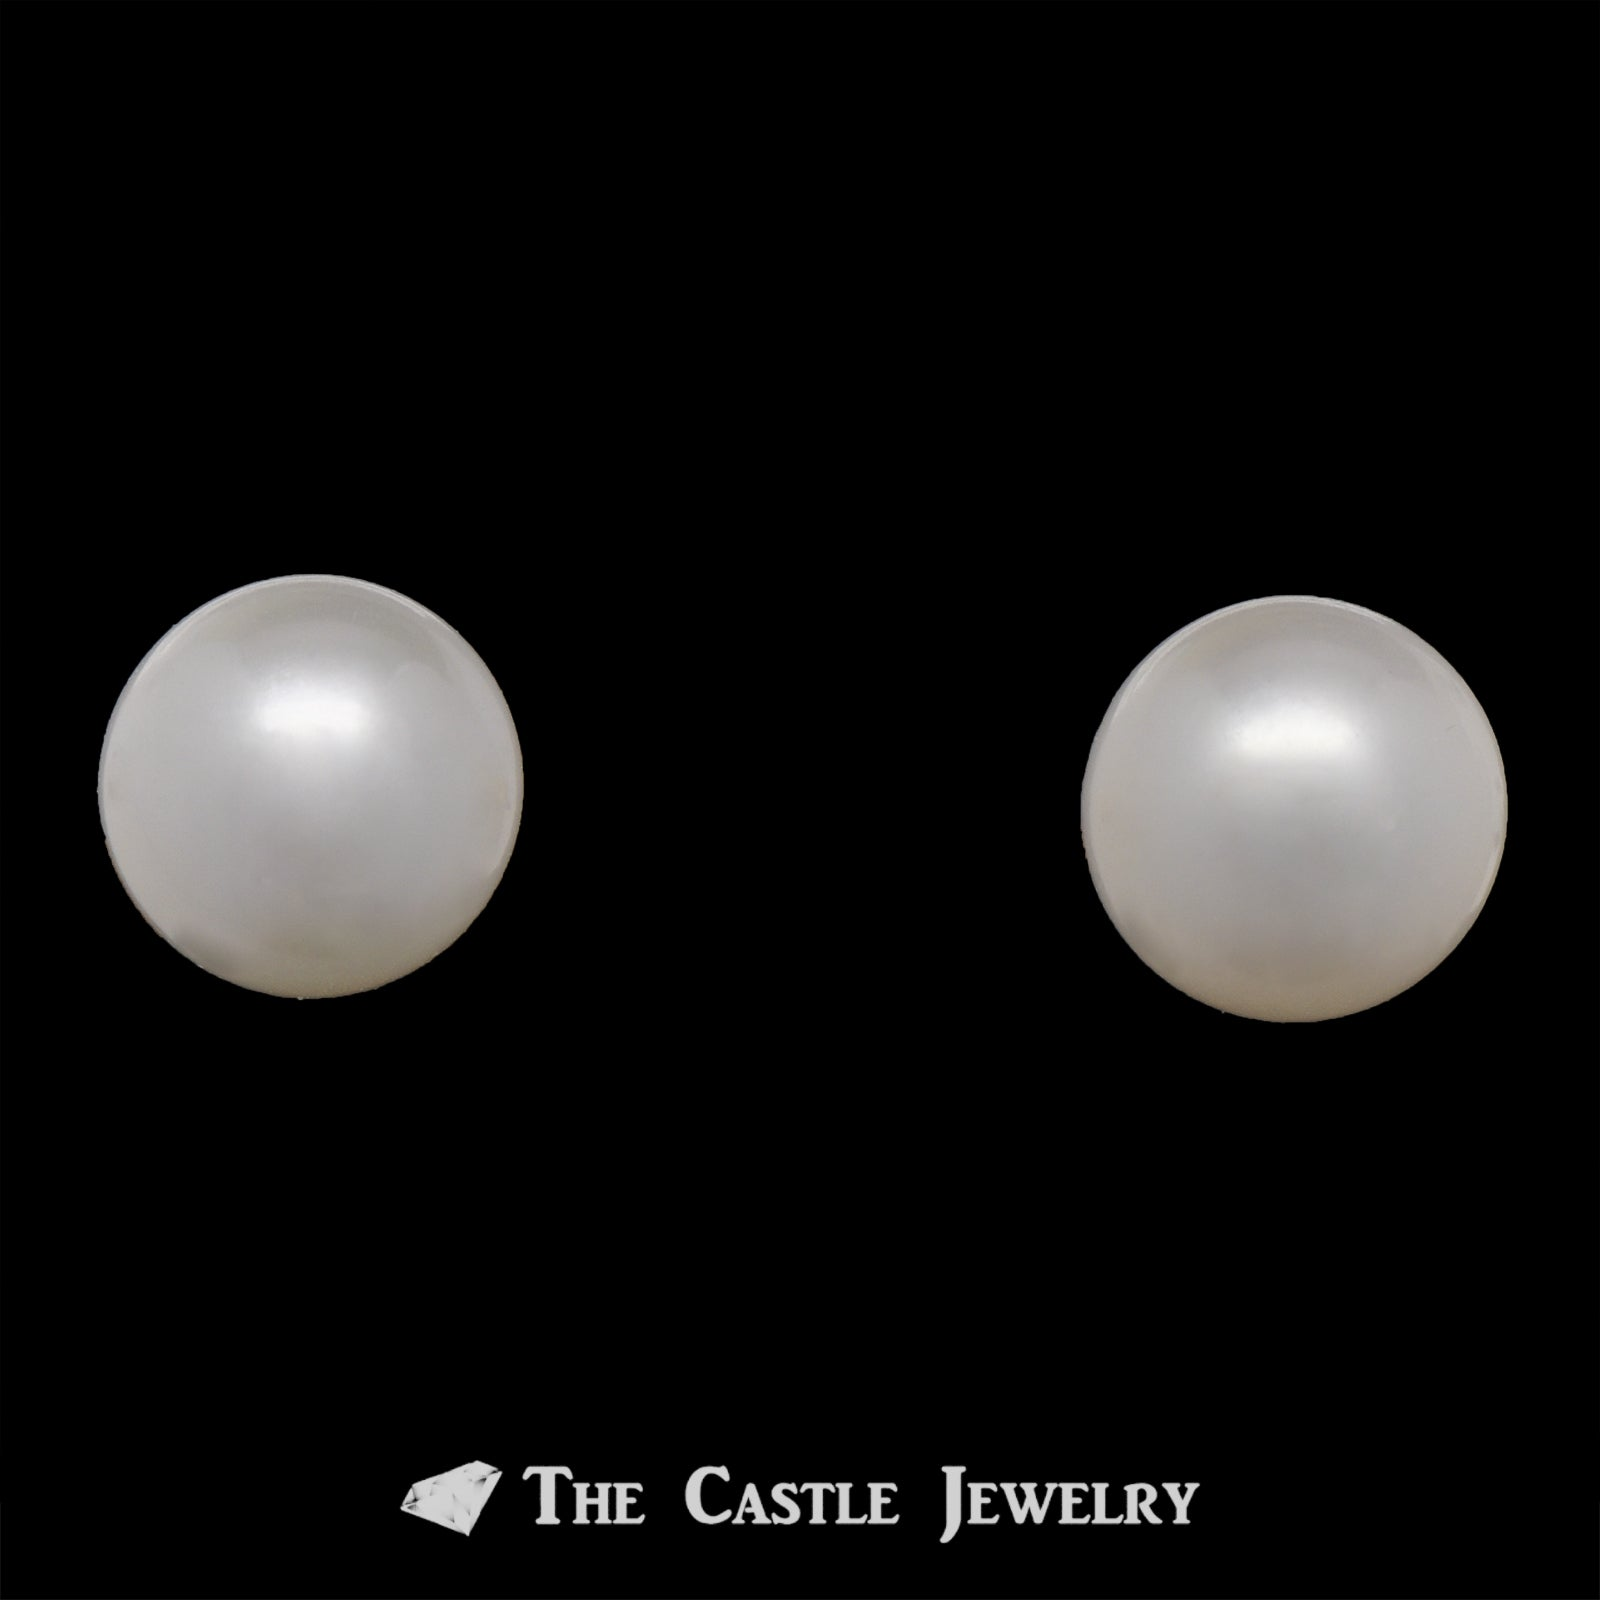 7-7.5mm Pearl Stud Earrings in 14K Gold